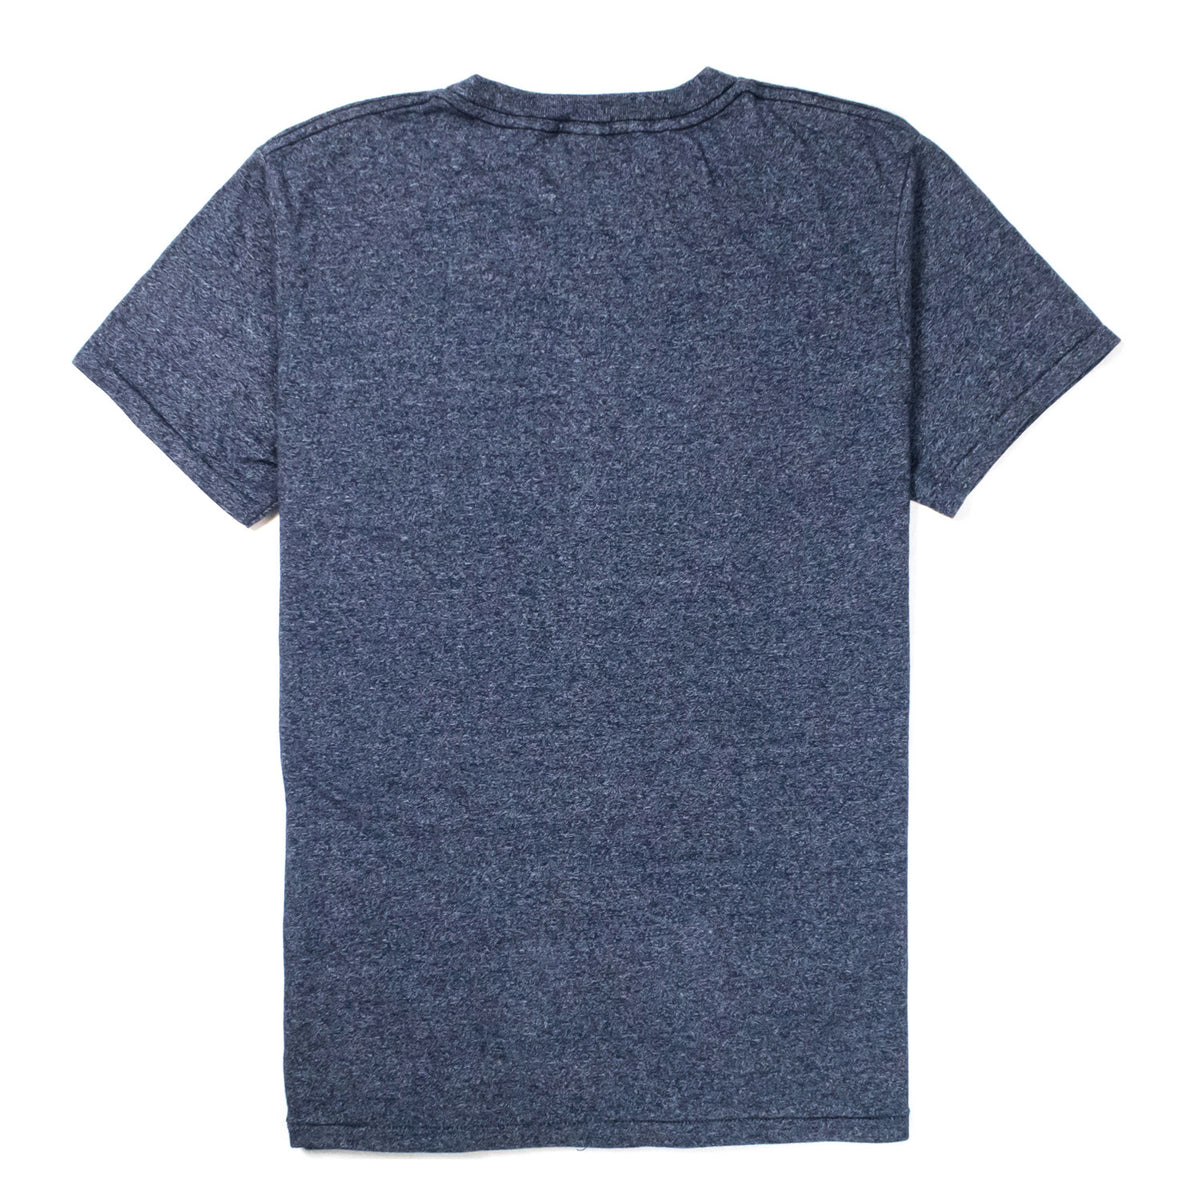 VELVA SHEEN - 1 PAC TEE - DARK GREY